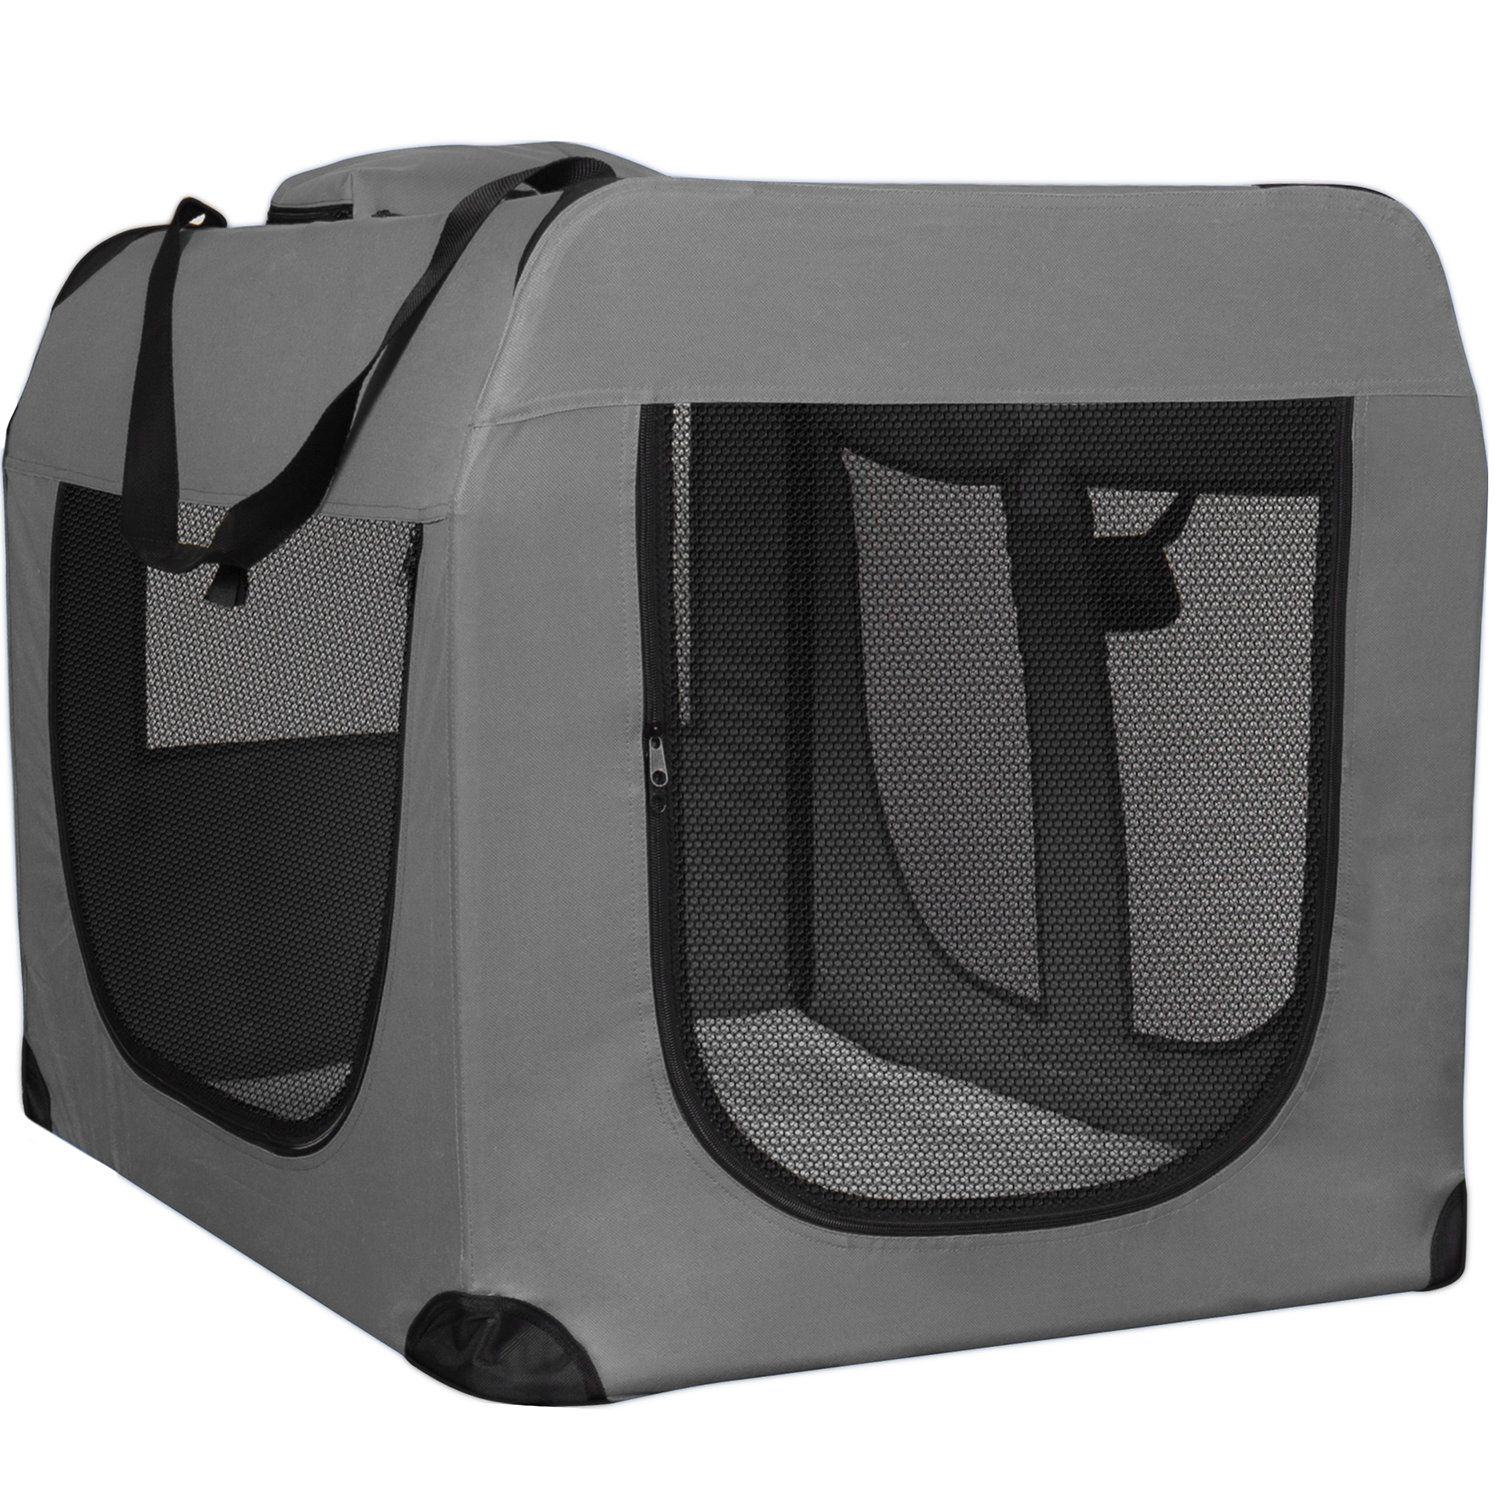 cae60eb5dfe Paws and Pals Foldable Soft Sided Pet Crate Training Kennel Carrier ...